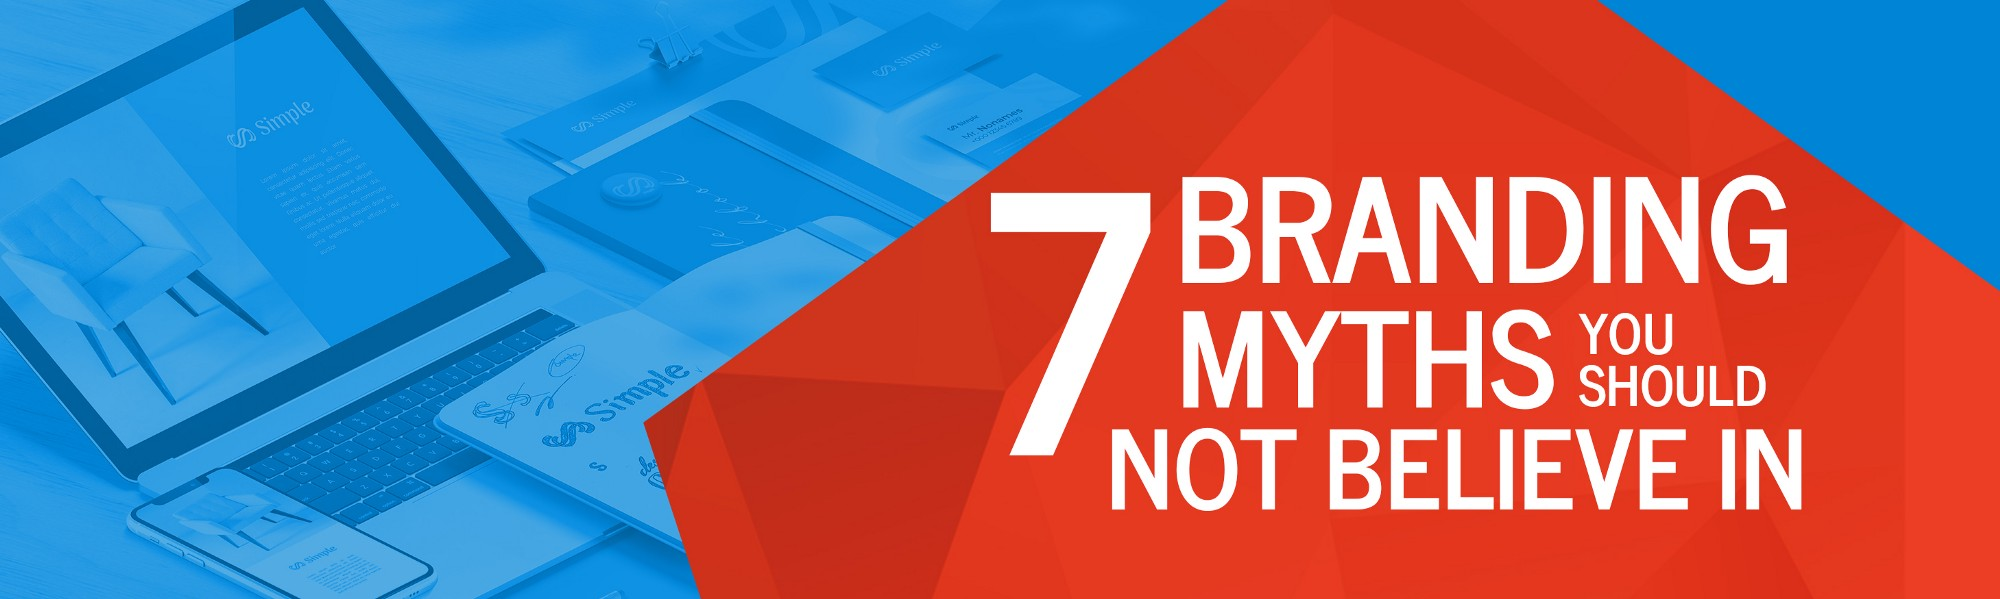 7 Branding Myths You Should Not Believe In